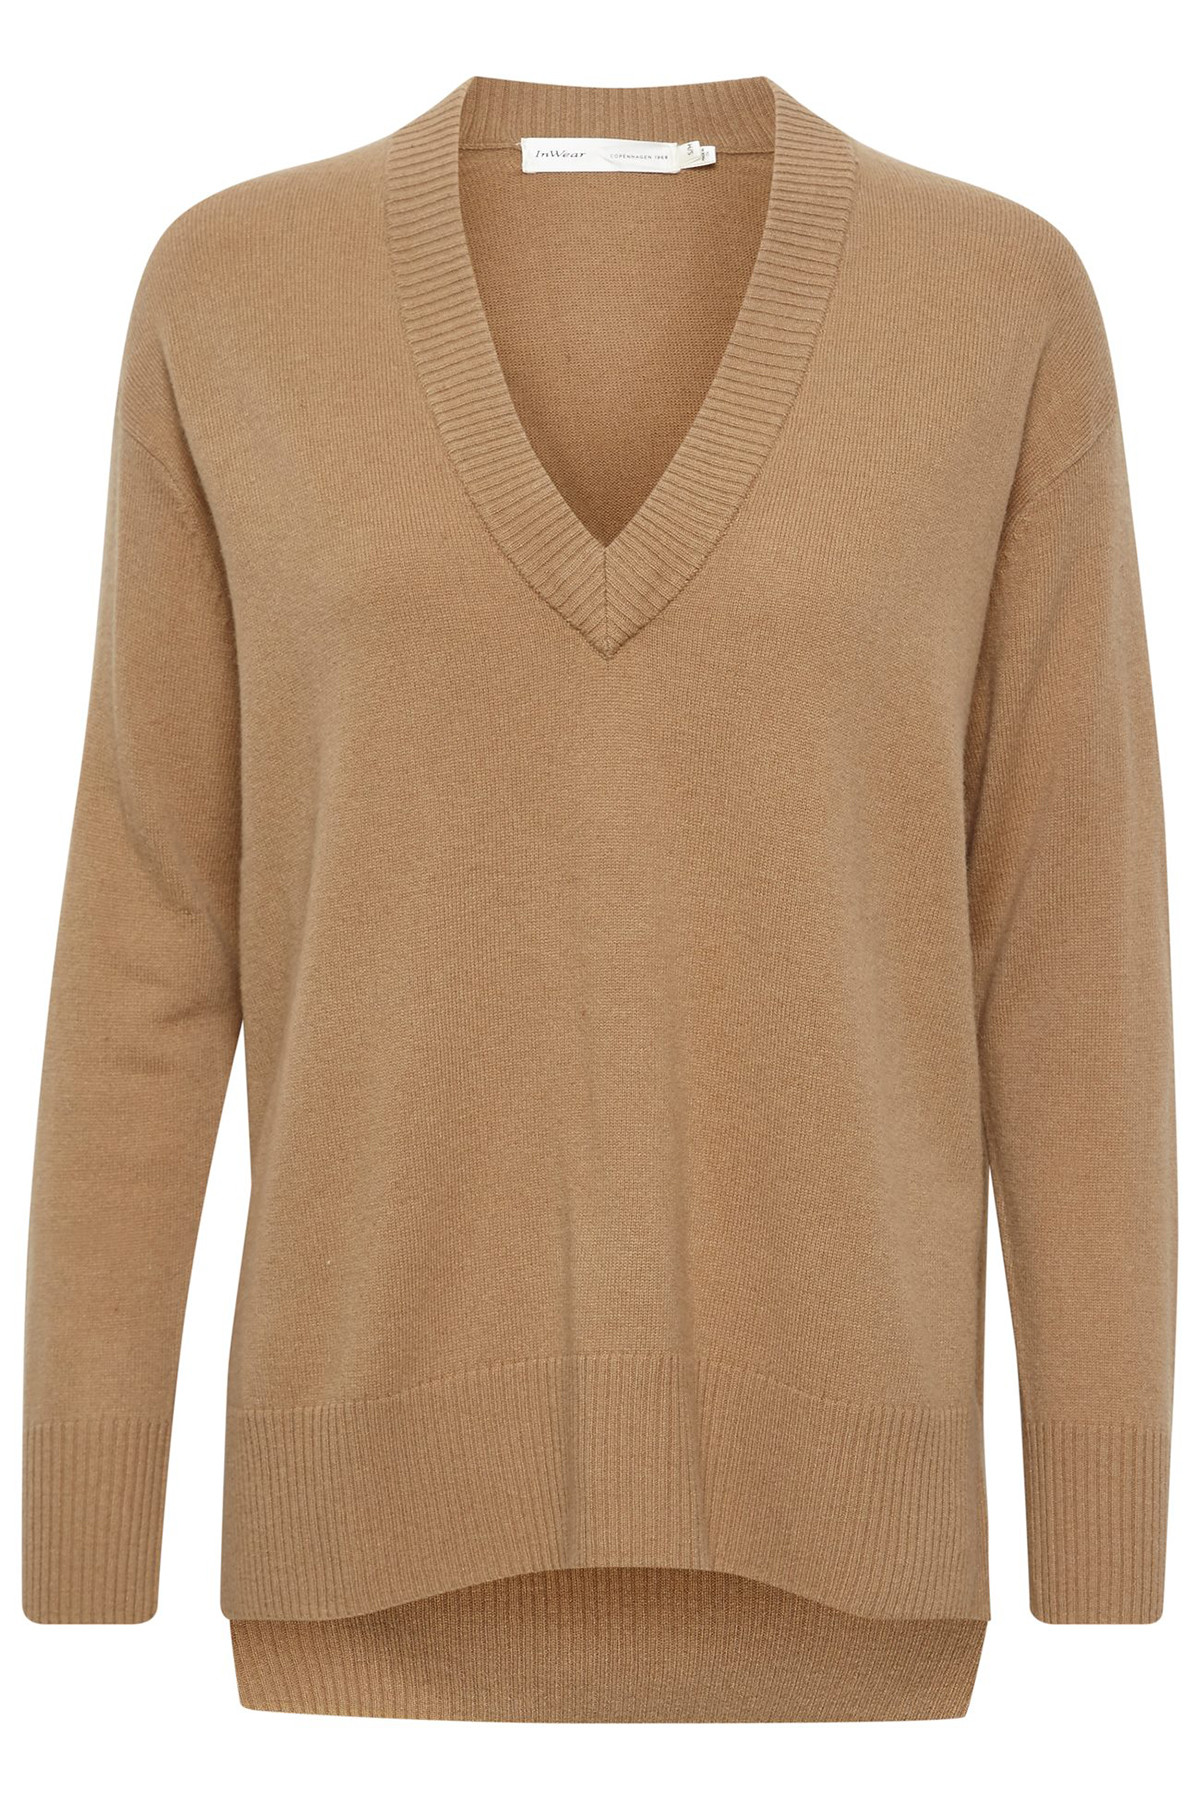 Image of   InWear IRISIW V-NECK PULLOVER 30104654 (Warm Camel 10117, L/XL)